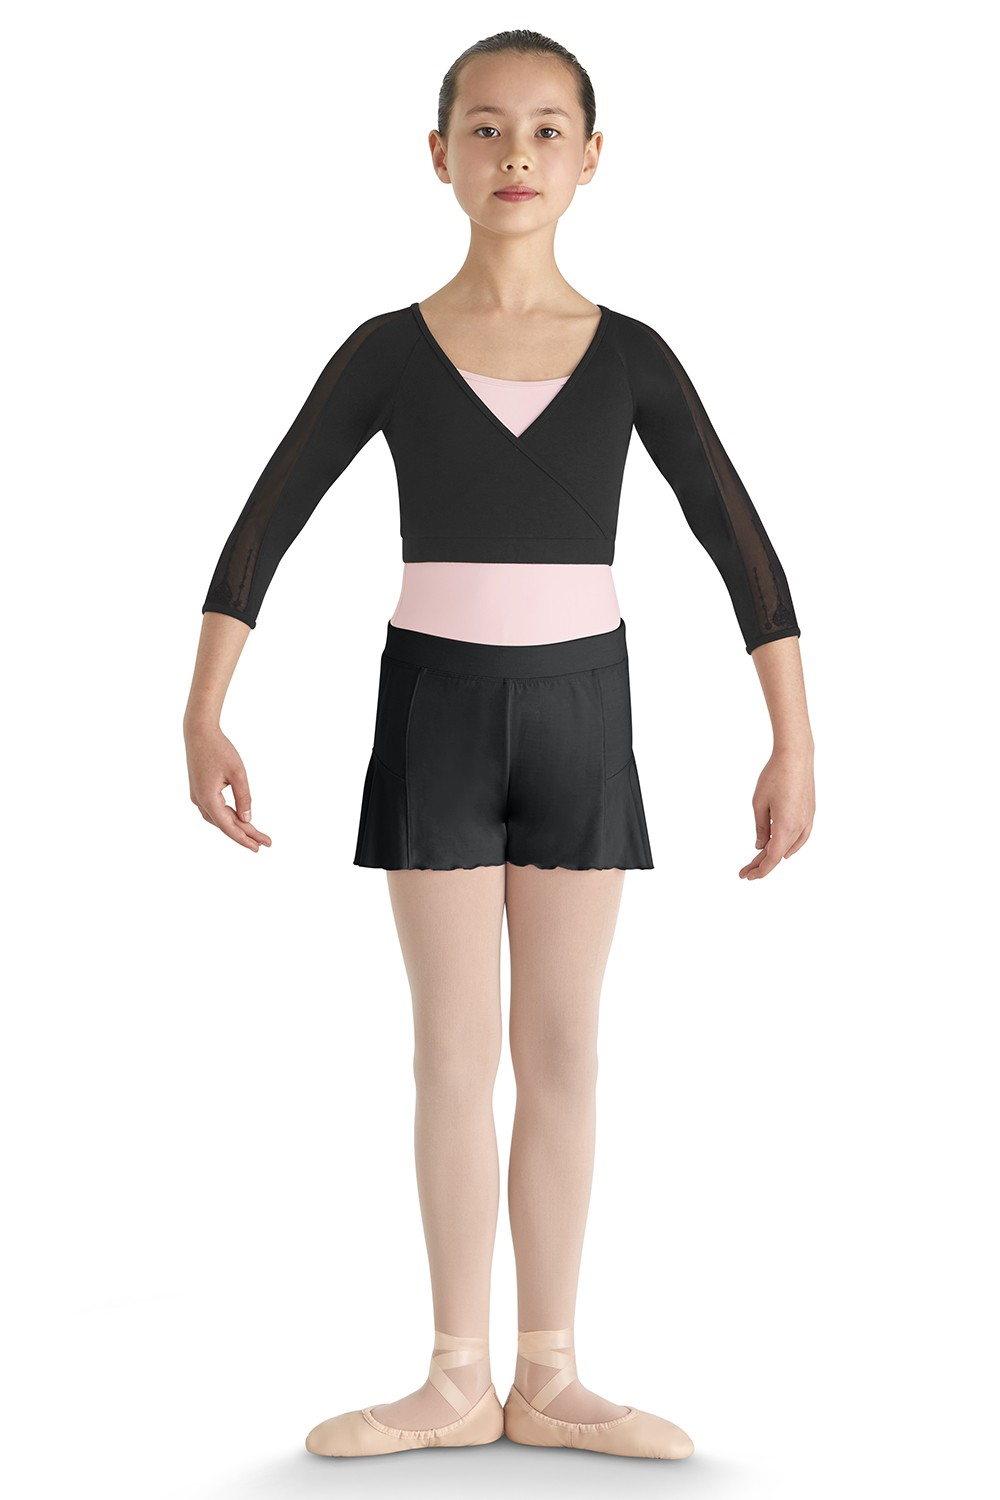 Malinee Children's Dance Shorts